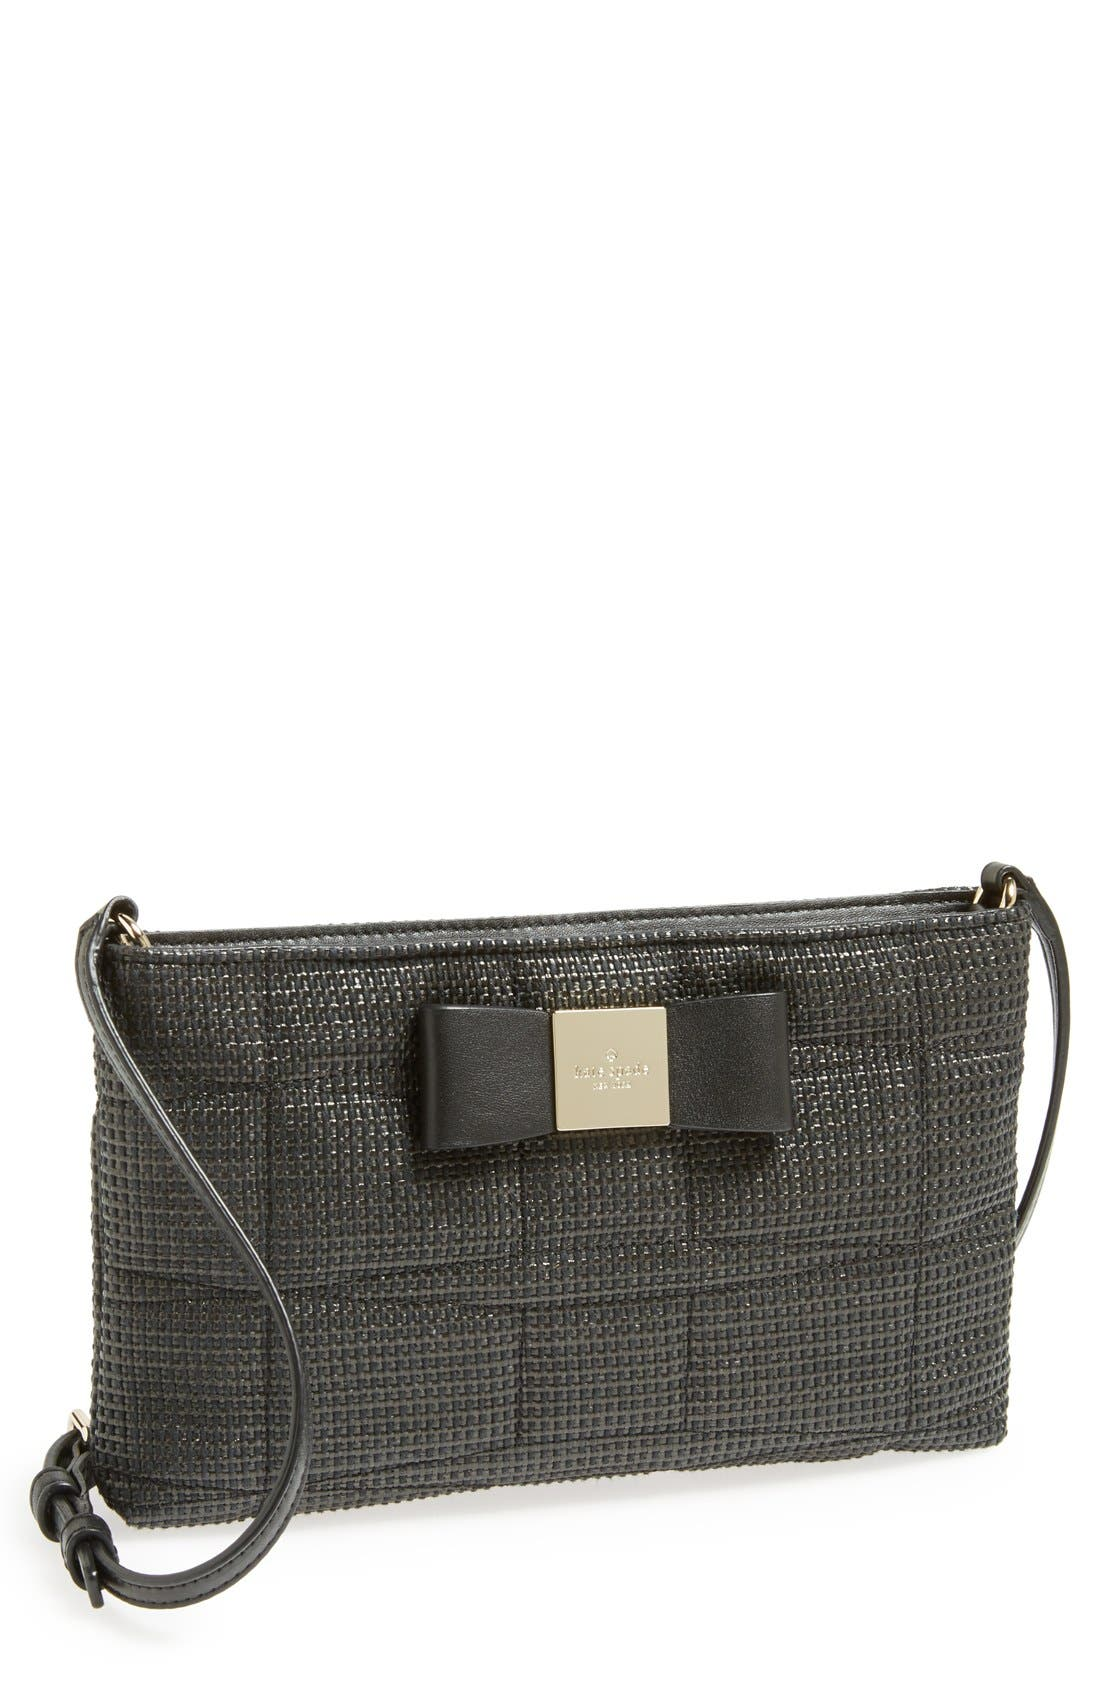 Main Image - kate spade new york 'veranda place - maree' crossbody